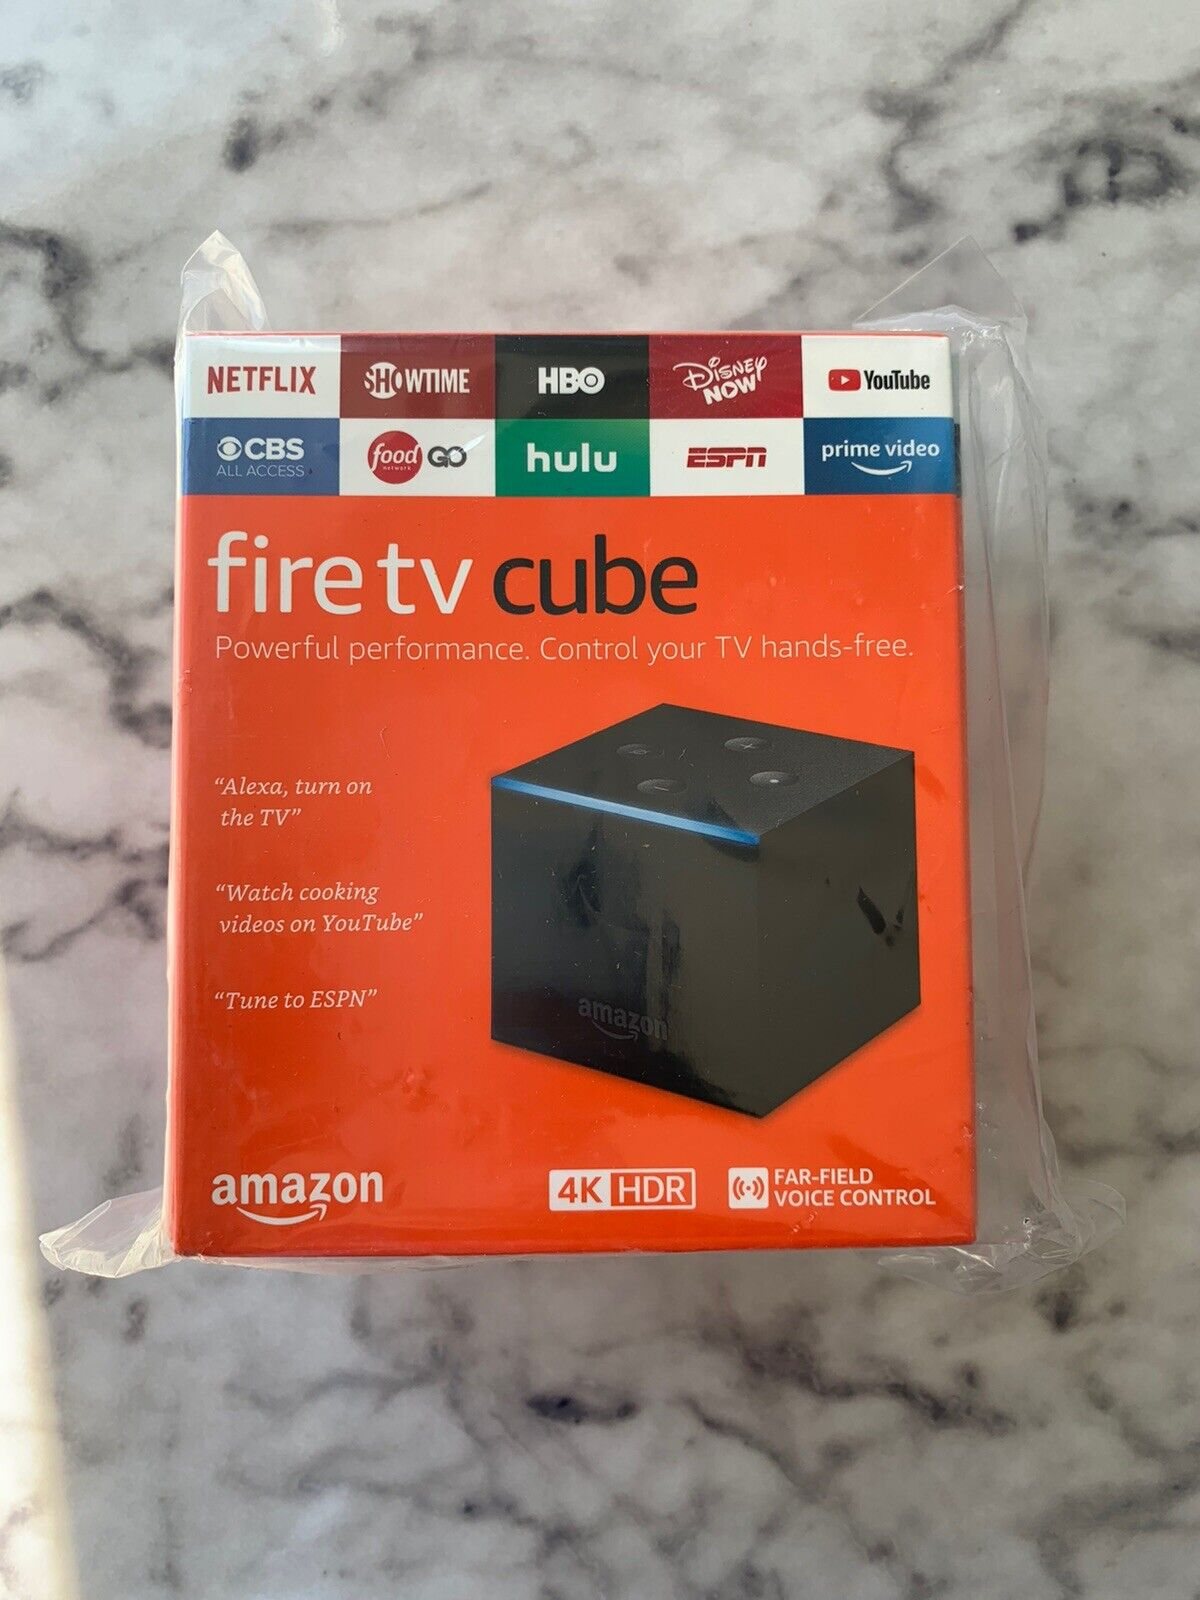 Amazon Fire TV Cube 4K 2nd Gen Streaming Media Player 16GB NEW LATEST 2019 16gb 2nd amazon cube fire gen media new player streaming